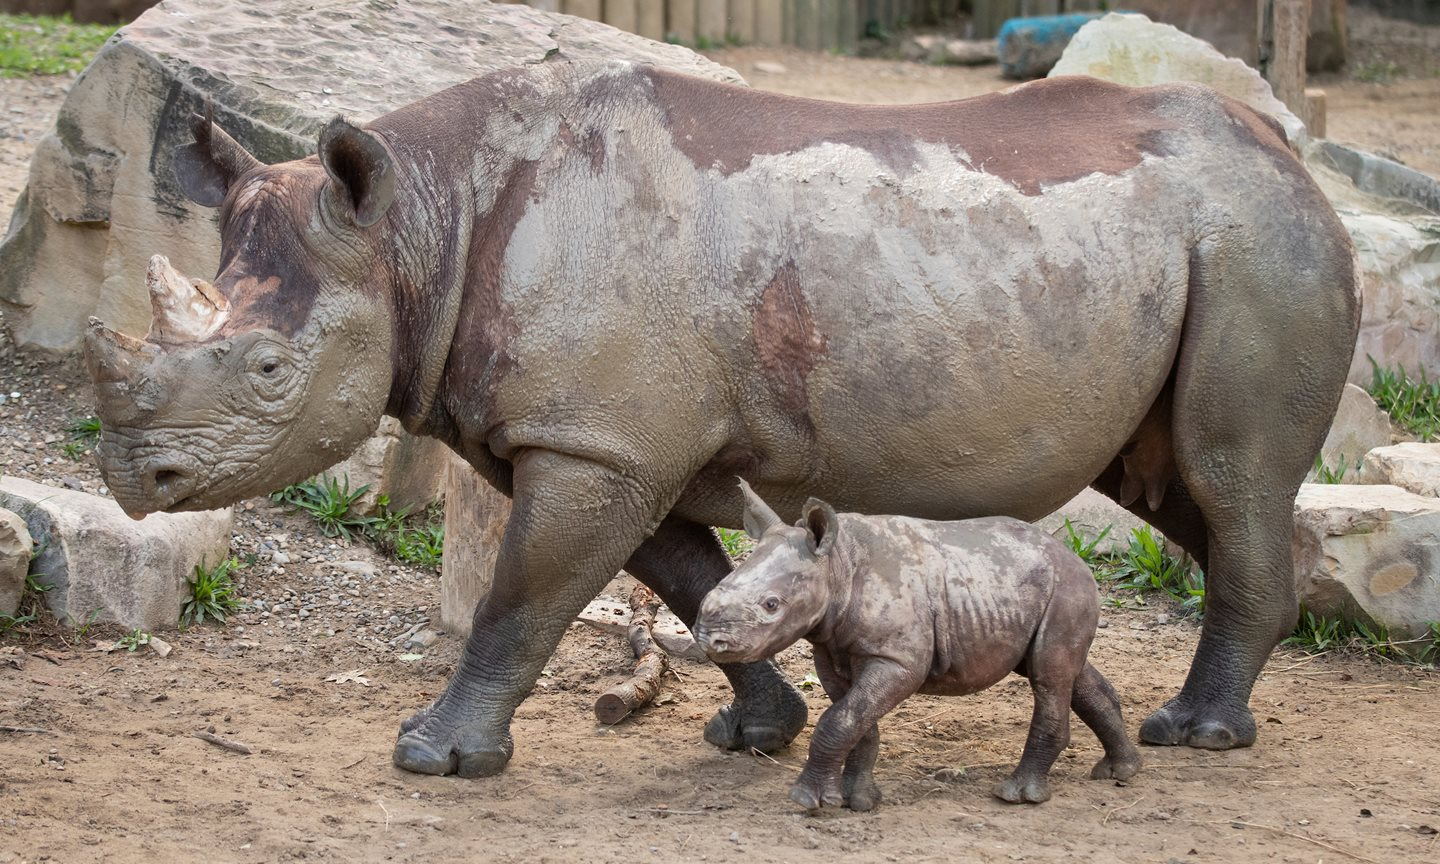 It's a Girl! Cleveland Metroparks Launches Naming Opportunity for New Rhino Calf